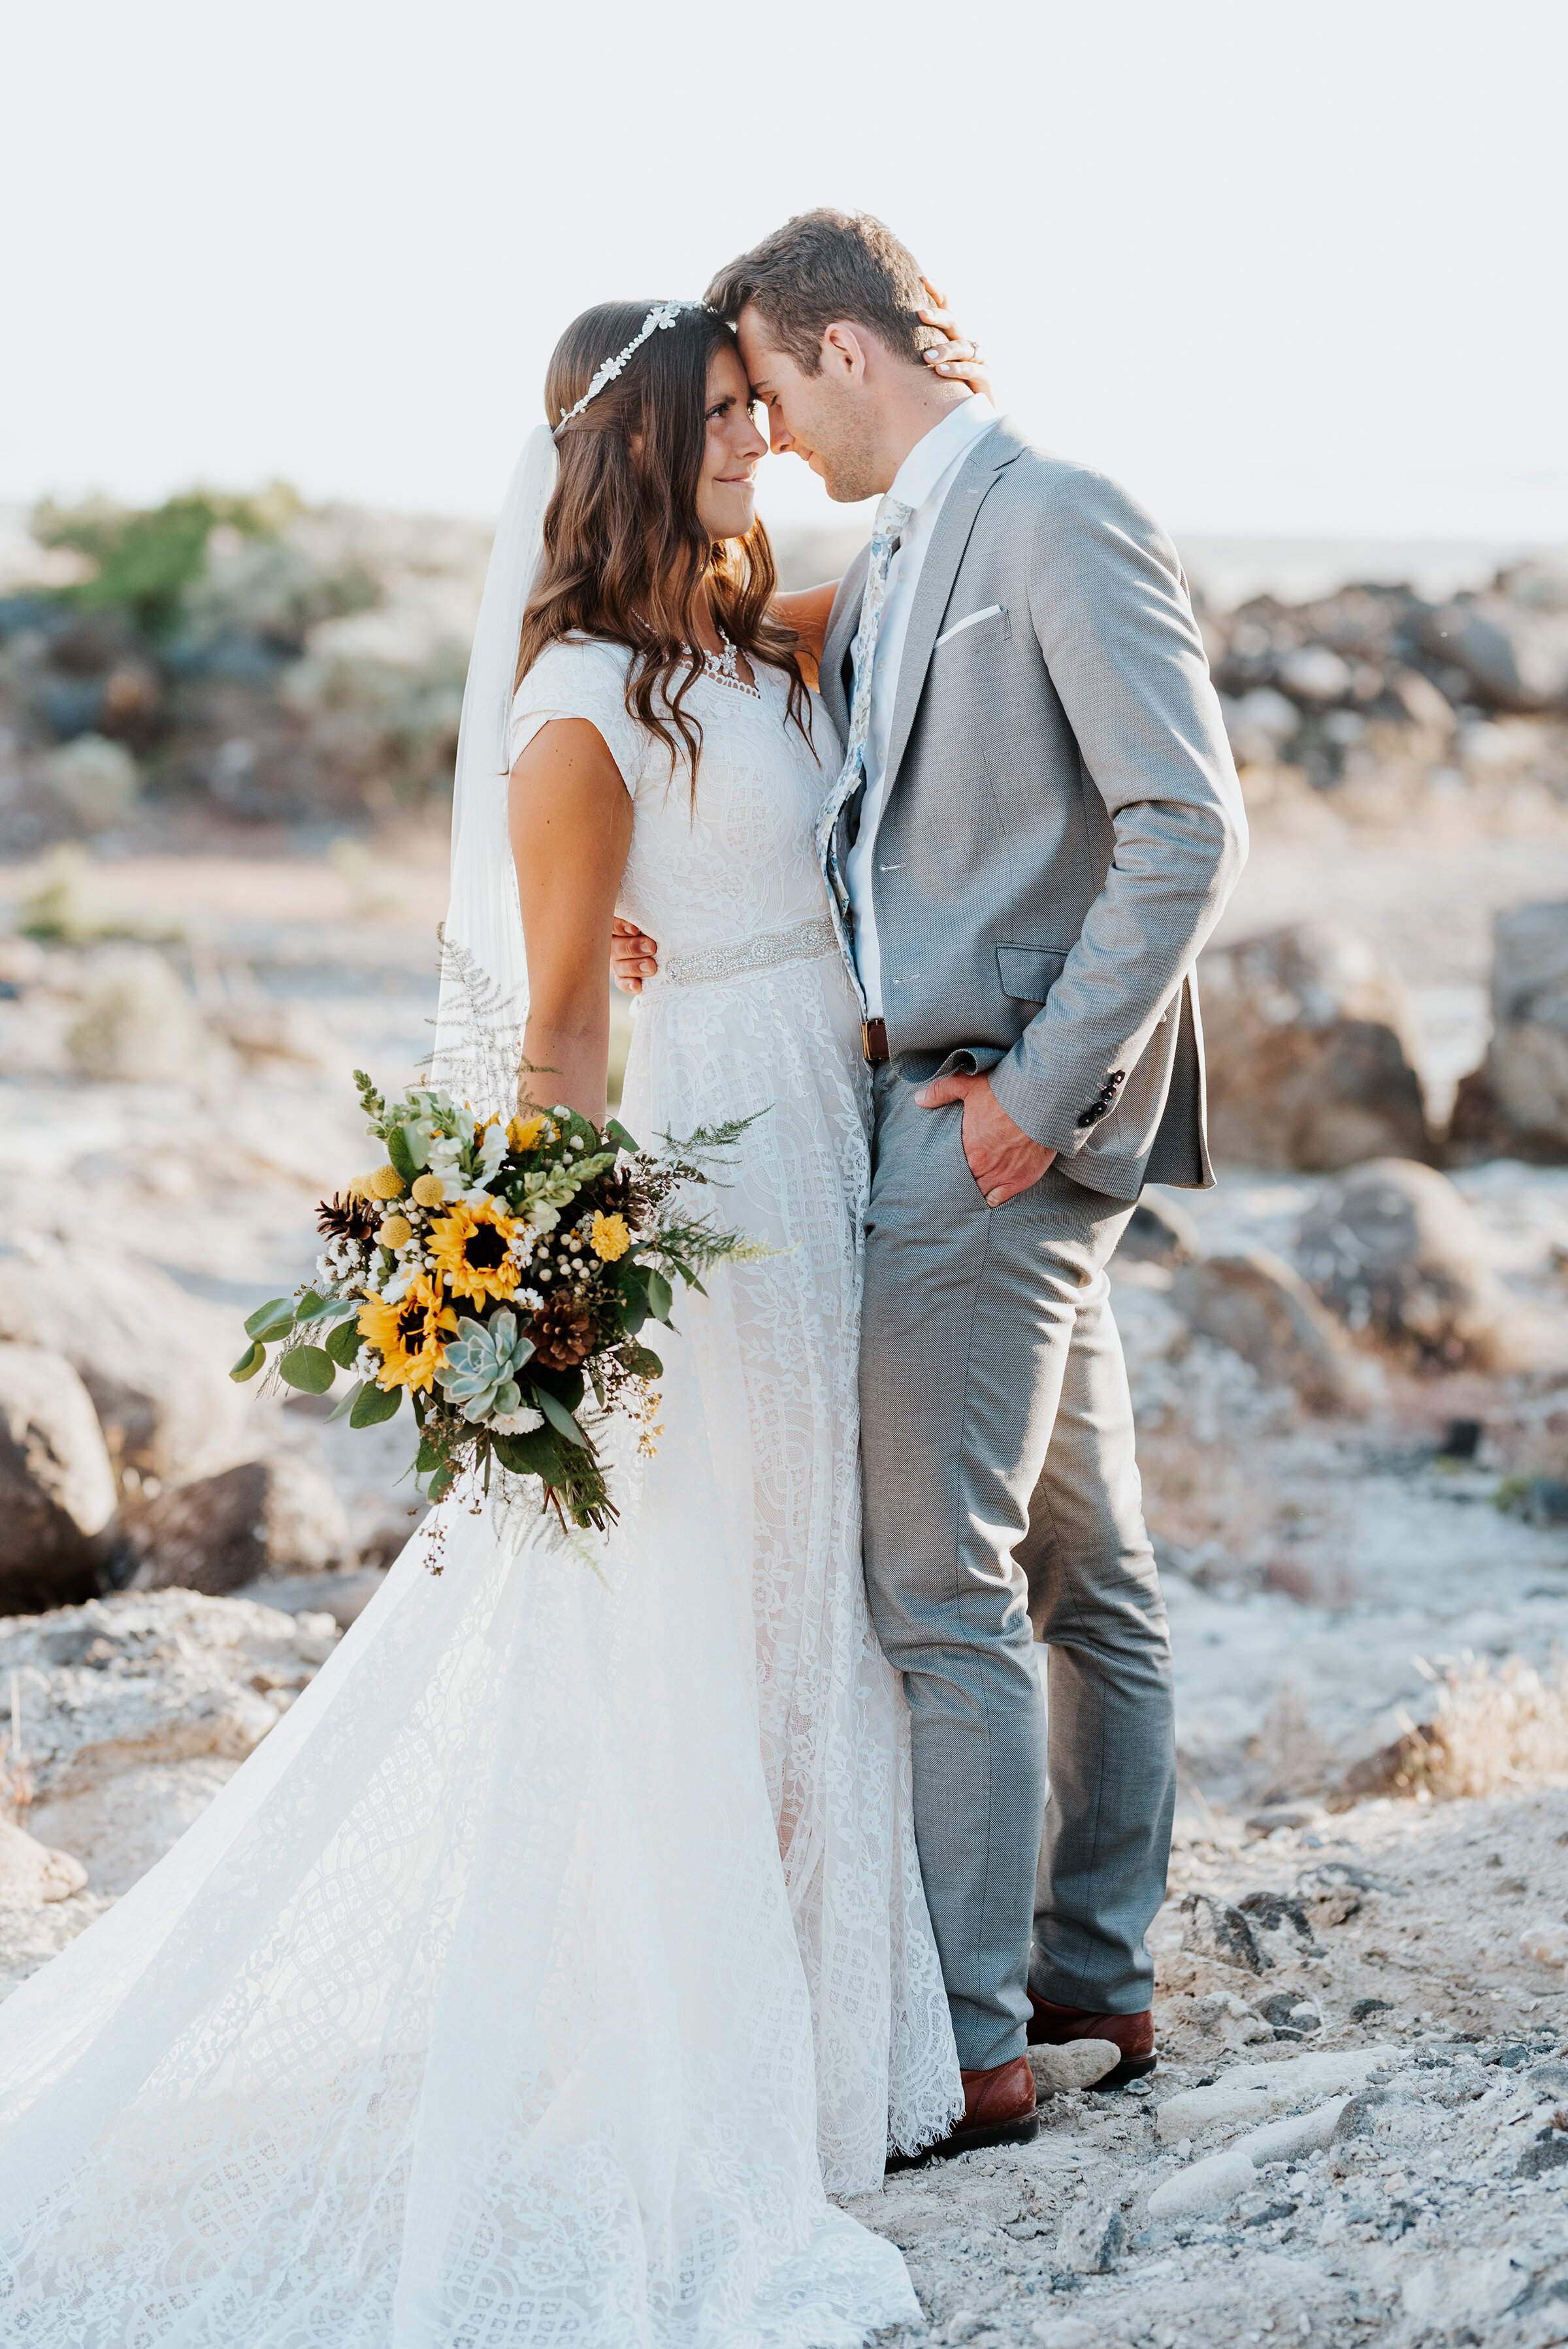 The bride's sunflower bouquet was gorgeous as the bride and groom stood on the sandy shore of the Great Salt Lake with the rocky Spiral Jetty surrounding them. #spiraljetty #GreatSaltLake #formalsession #SaltFlats #sunsetphotosession #NorthernUtah #weddingphotographer #formalphotographer #brideandgroom #outdoorformals #weddingformalphotography